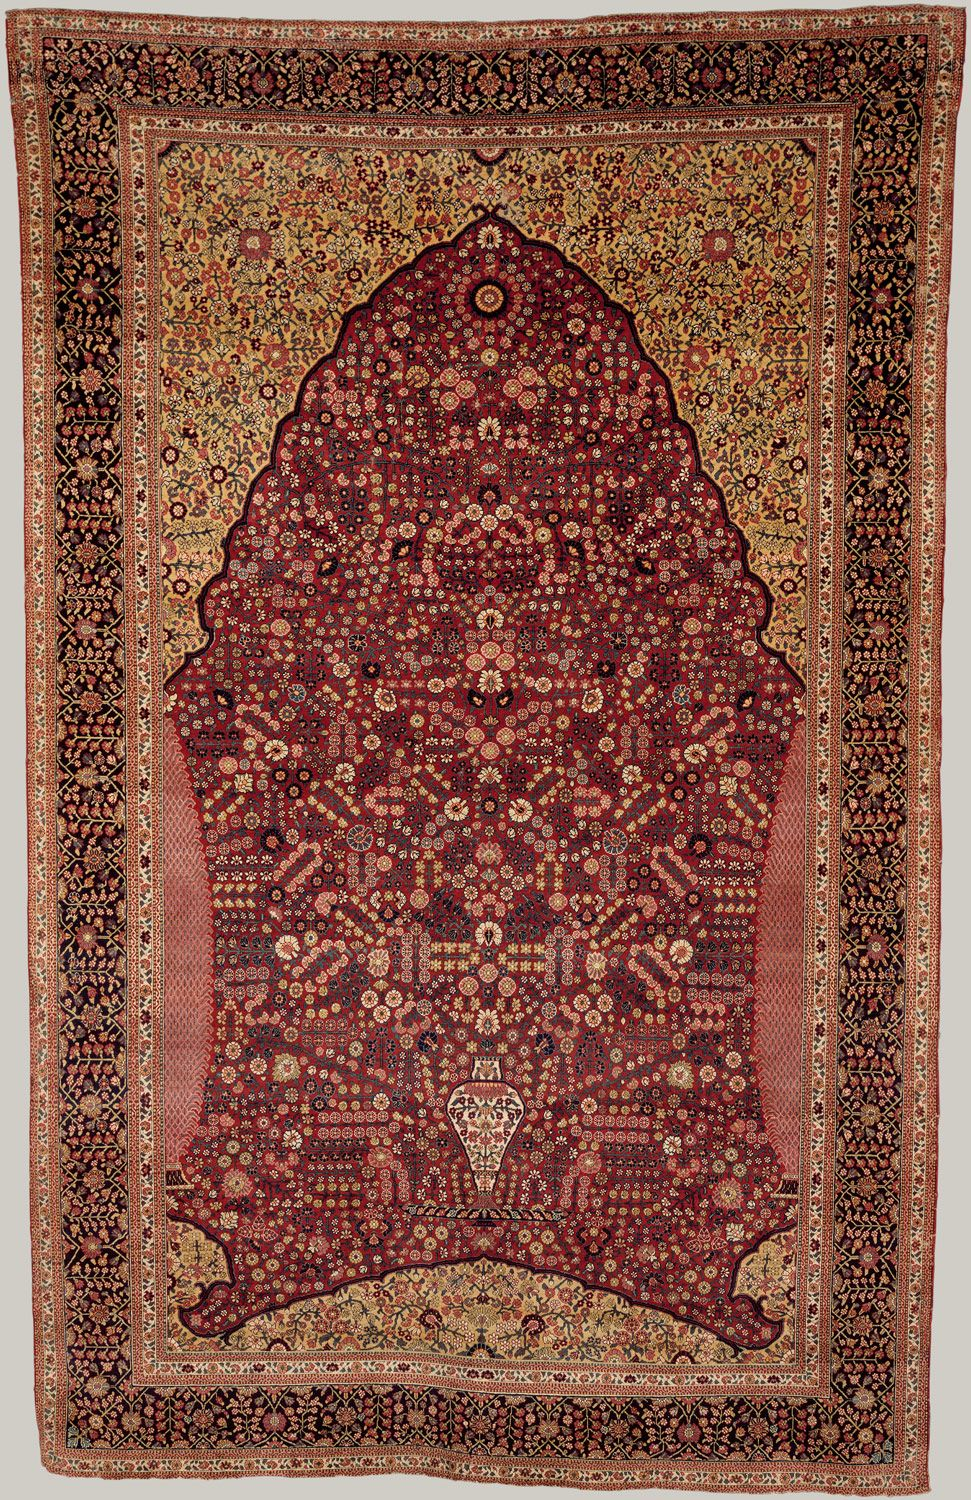 pashmina carpet with gateway-and-millefleur pattern | 18th century